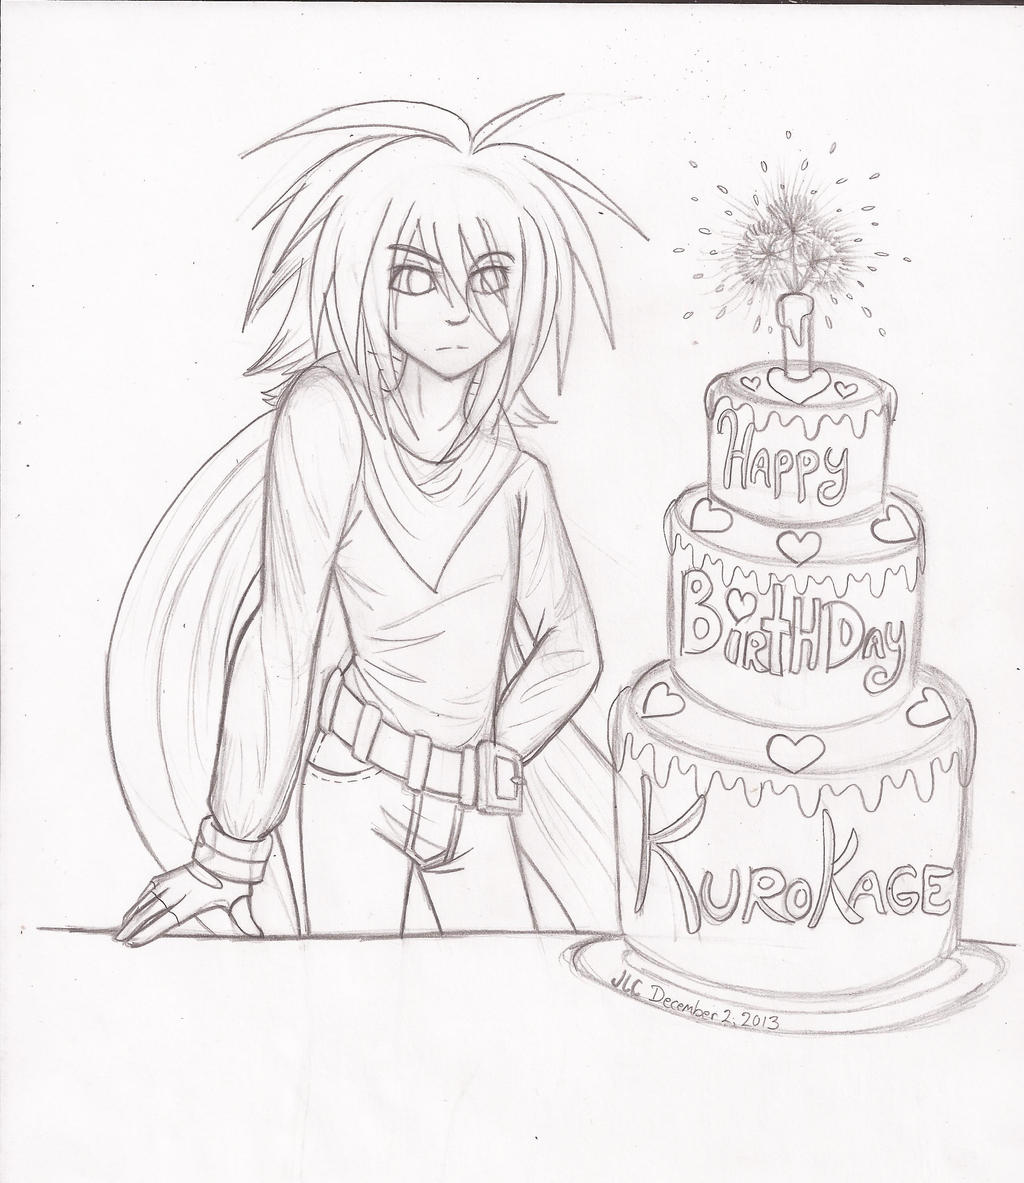 Happy Birthday Kurokage 2013 by HirokoTheHedgehog